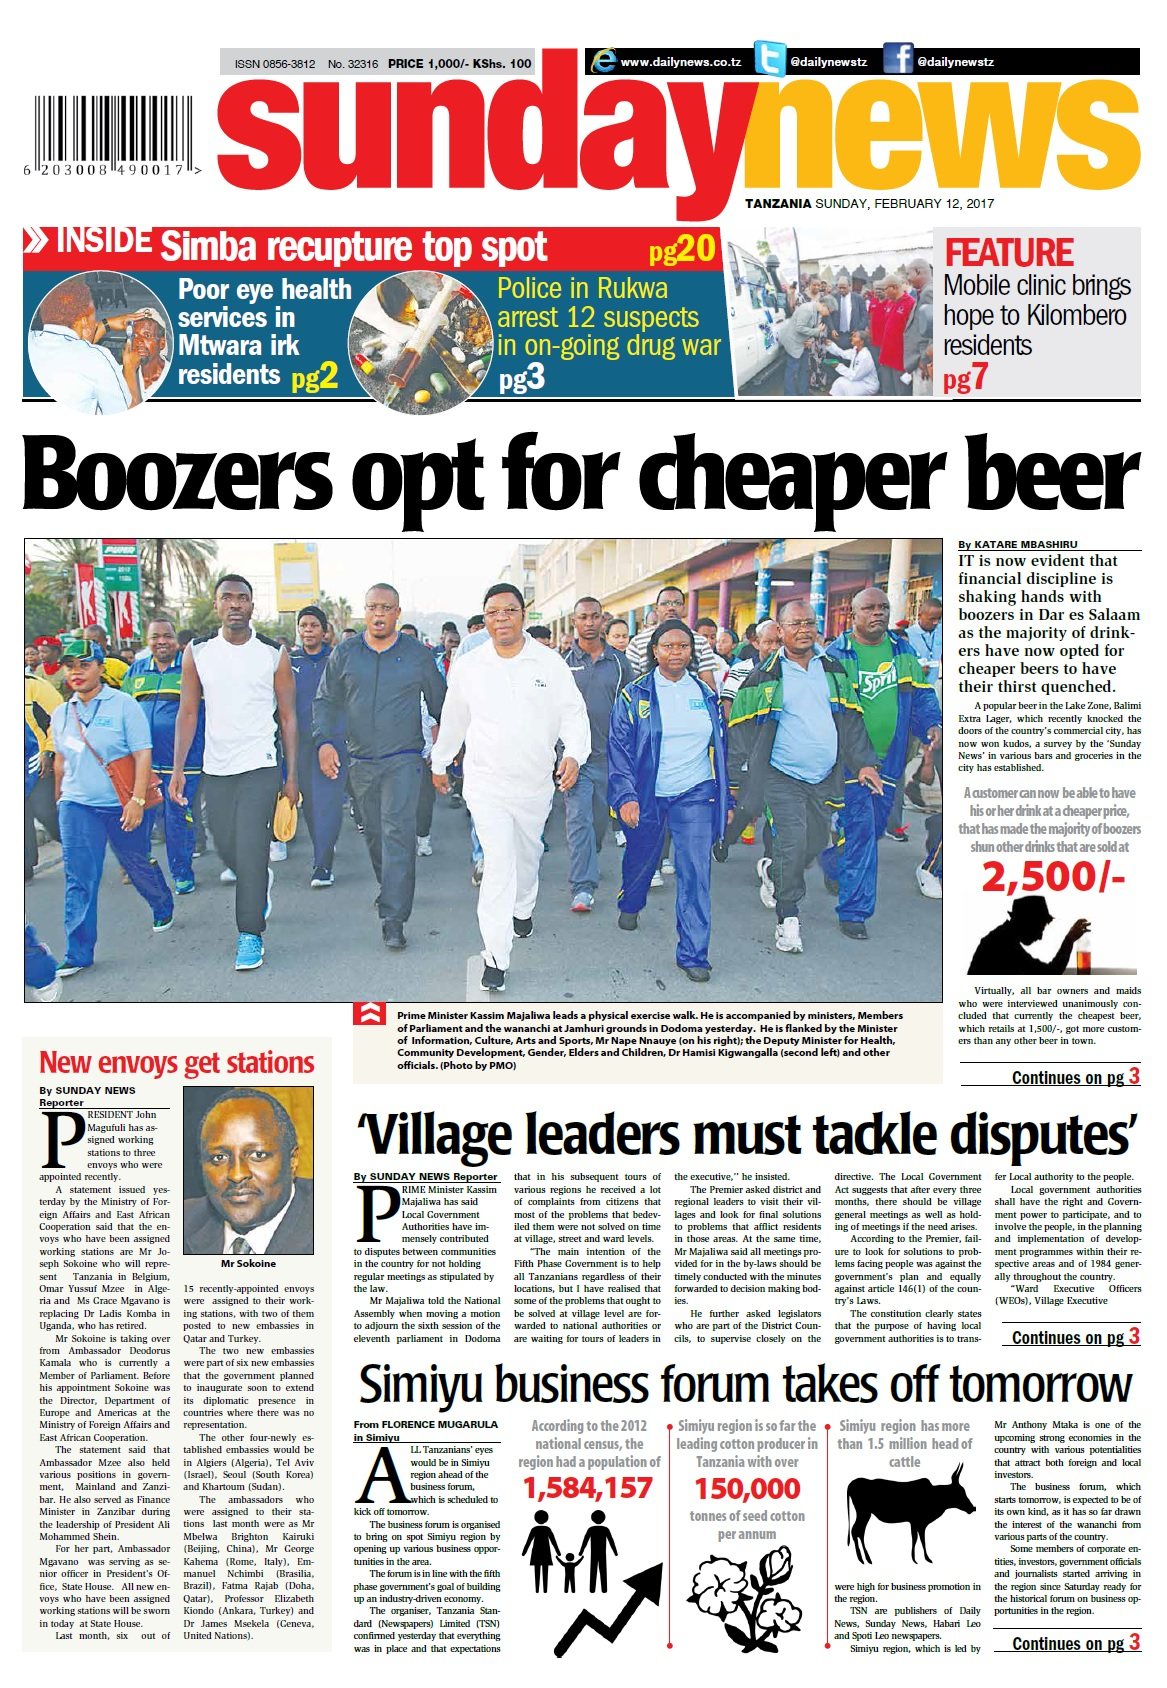 BOOZERS OPT FOR CHEAPER BEER